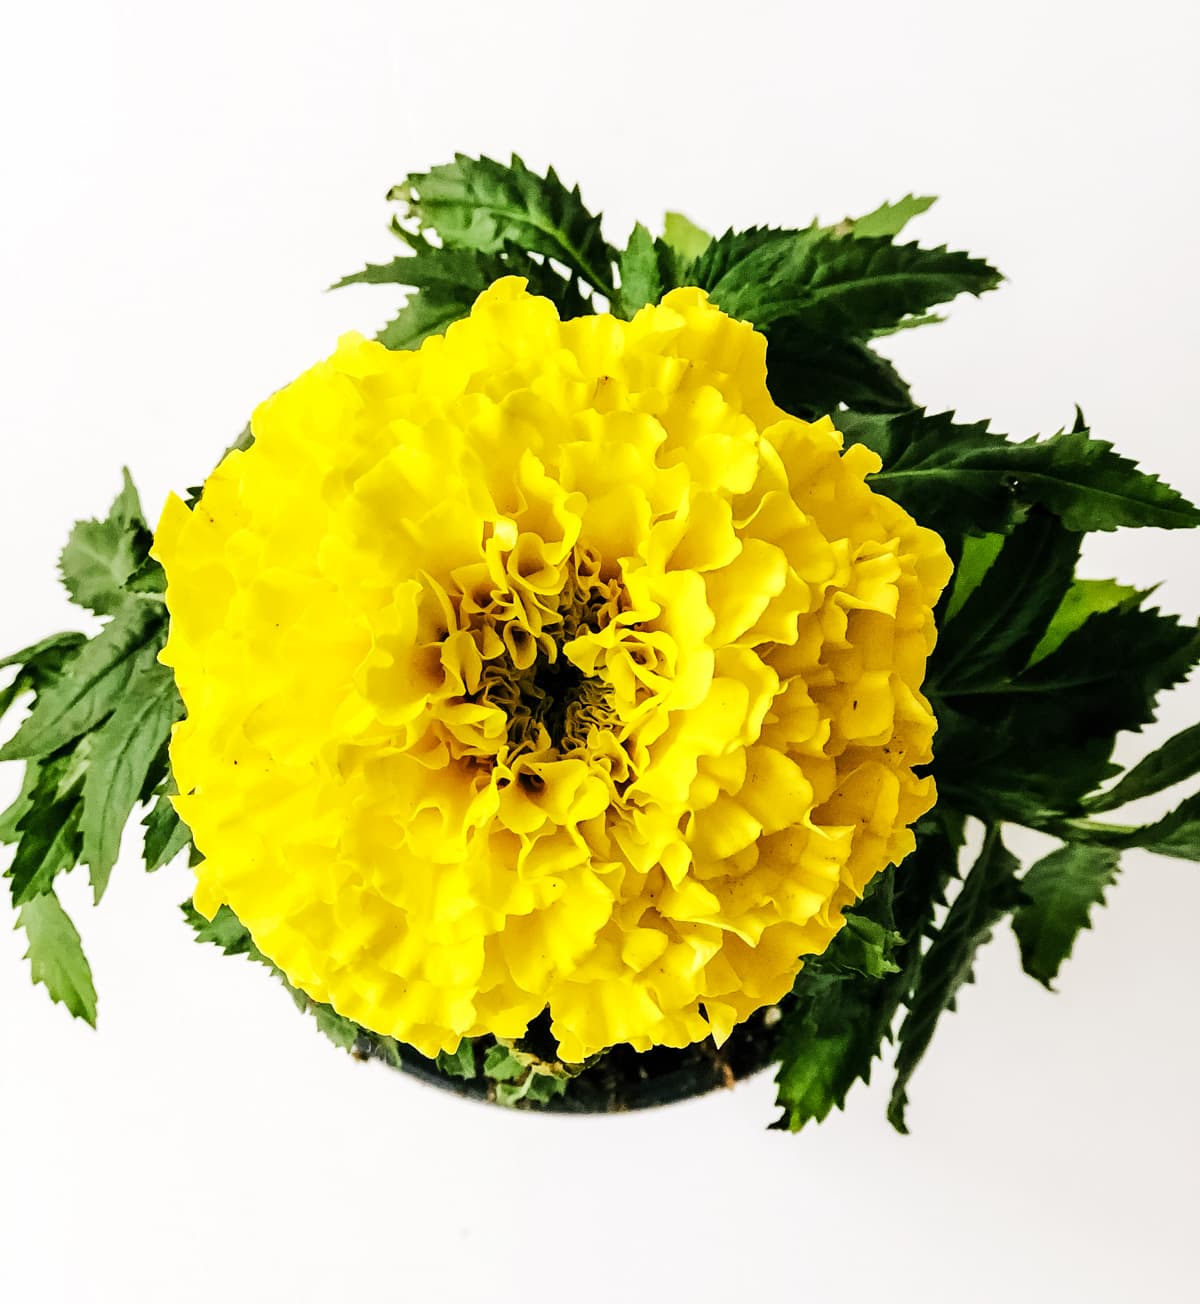 Planting an Edible Flower Garden: Marigolds